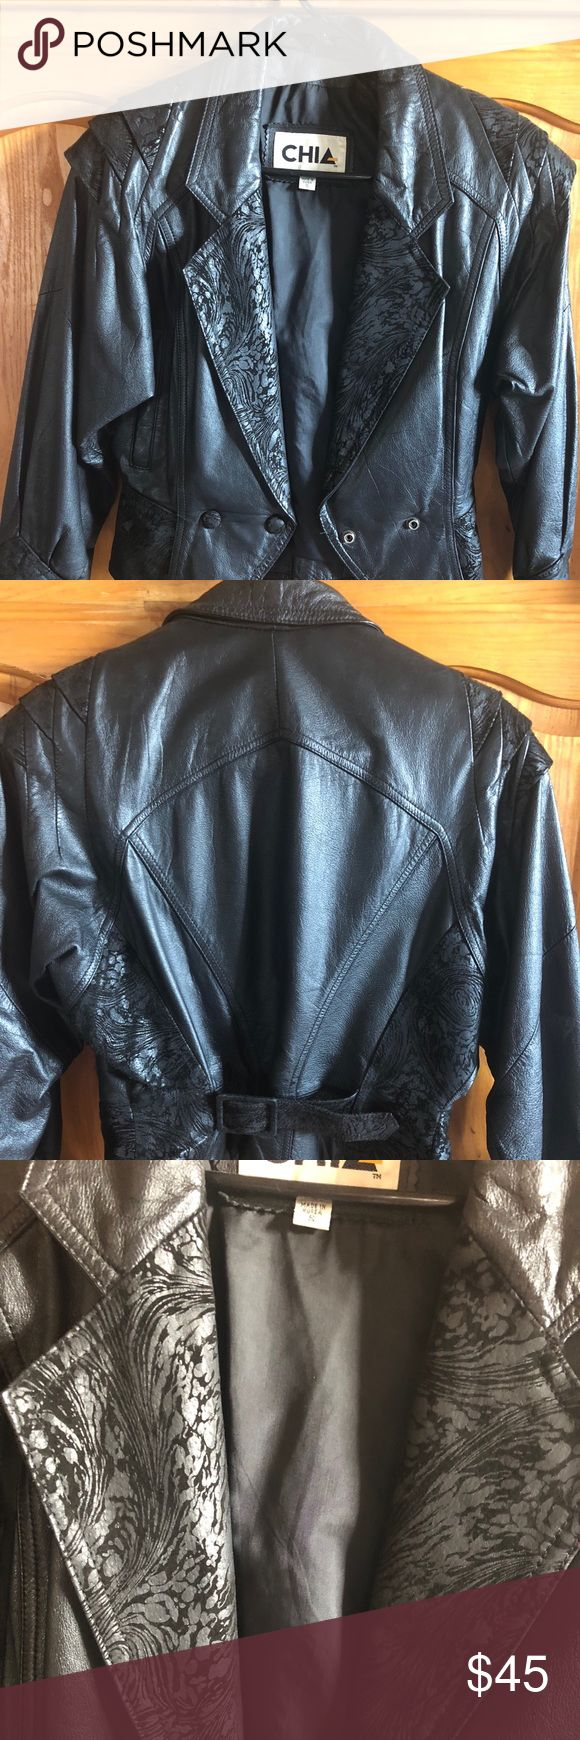 Women's Small Leather Jacket Women's Small Leather Jacket. 100% Leather Chia Brand Very nice Condition. & Other Stories Jackets & Coats Blazers